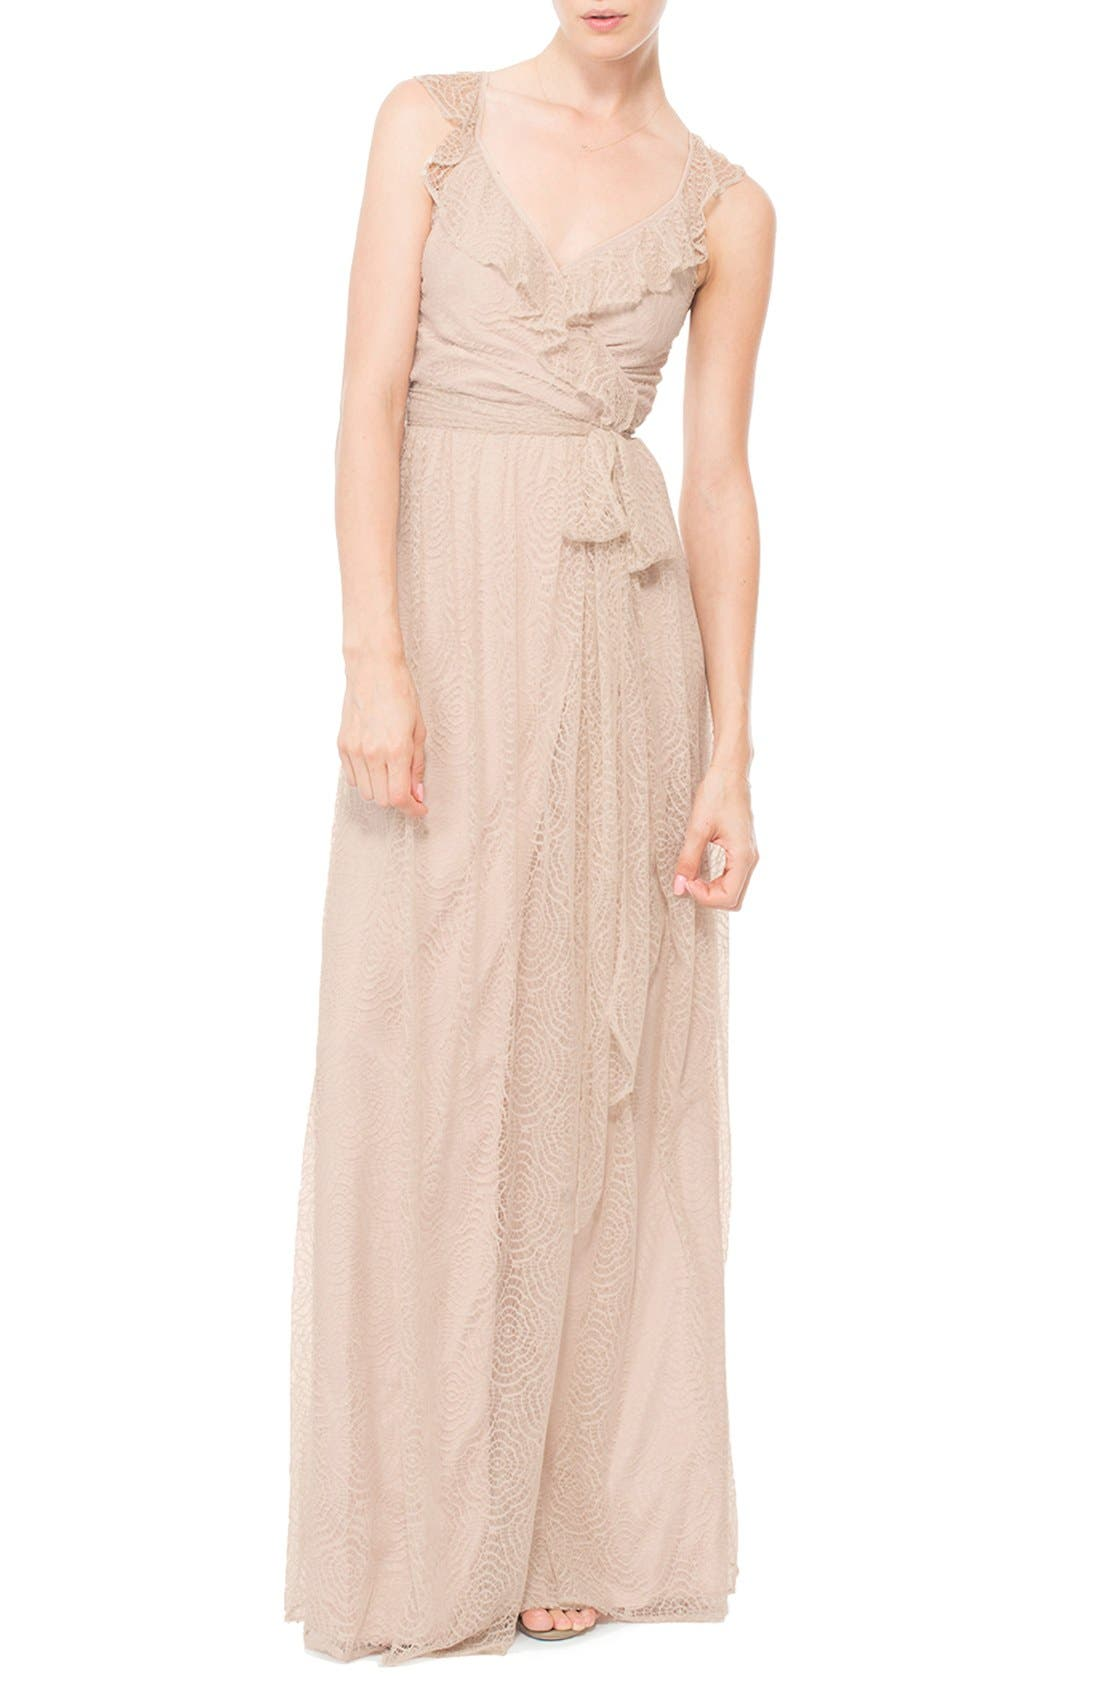 Main Image - Ceremony by Joanna August 'Lacey' Ruffle Wrap Lace Dress